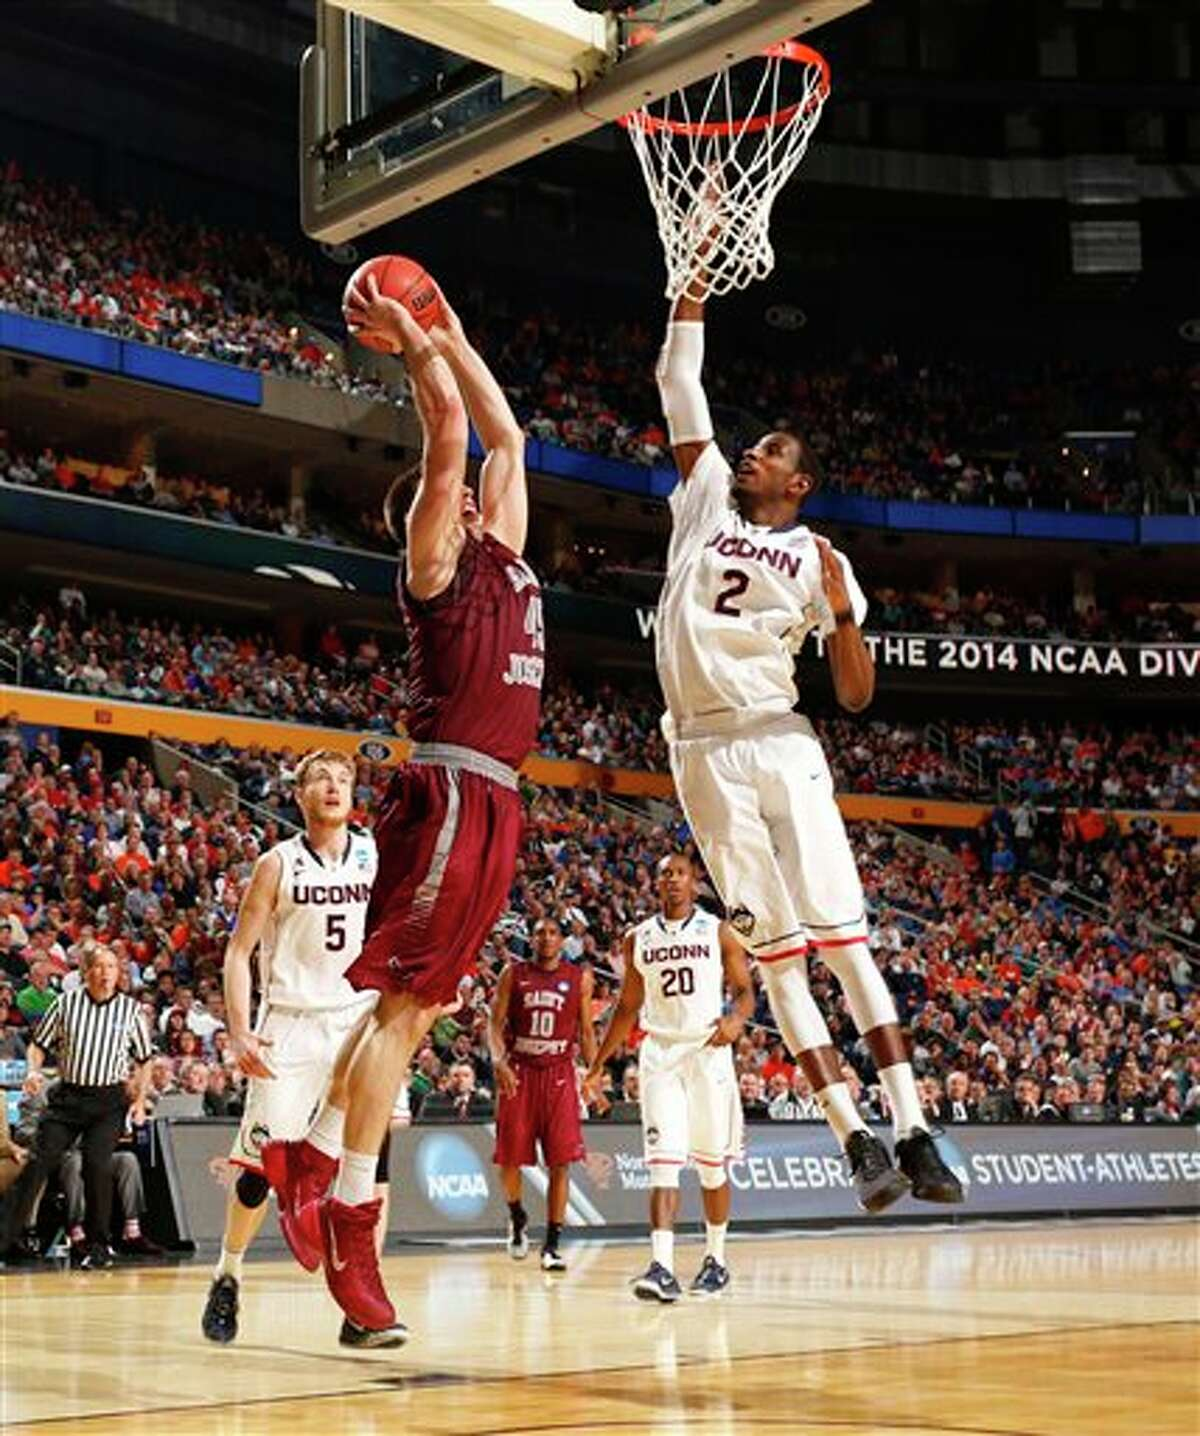 Saint Joseph's forward Halil Kanacevic (45) dunks against Connecticut forward DeAndre Daniels (2) during the second half of a second-round game in the NCAA college basketball tournament in Buffalo, N.Y., Thursday, March 20, 2014. (AP Photo/Bill Wippert)